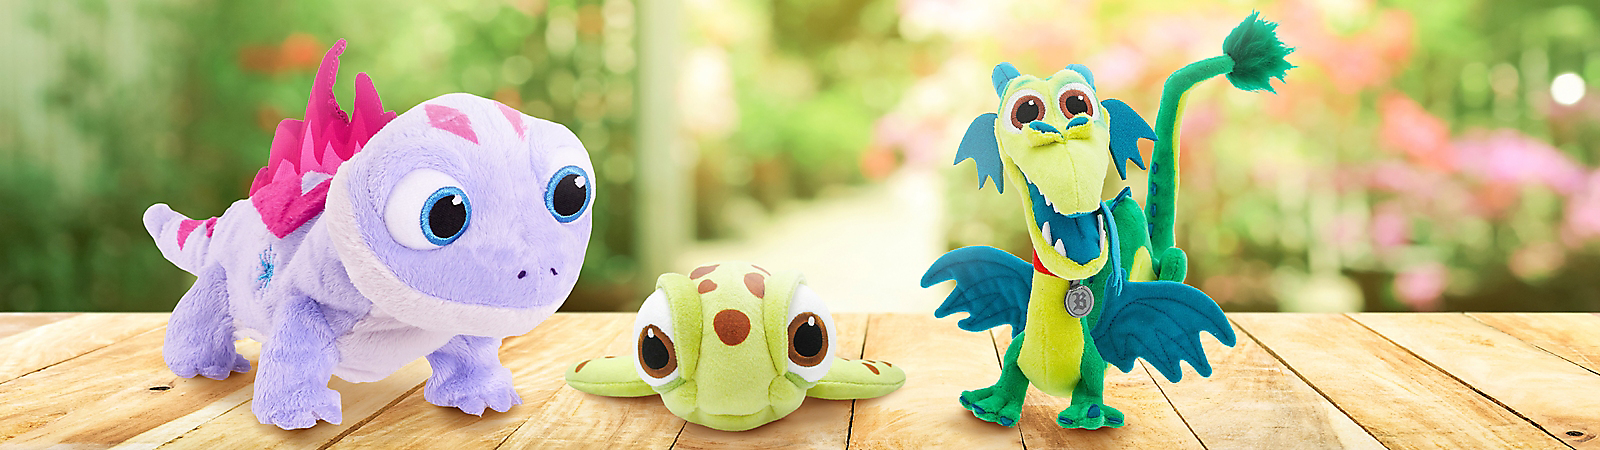 Finding Nemo's Squirt, Frozen 2's Bruni the Salamander, and Onward's Blazey Plush